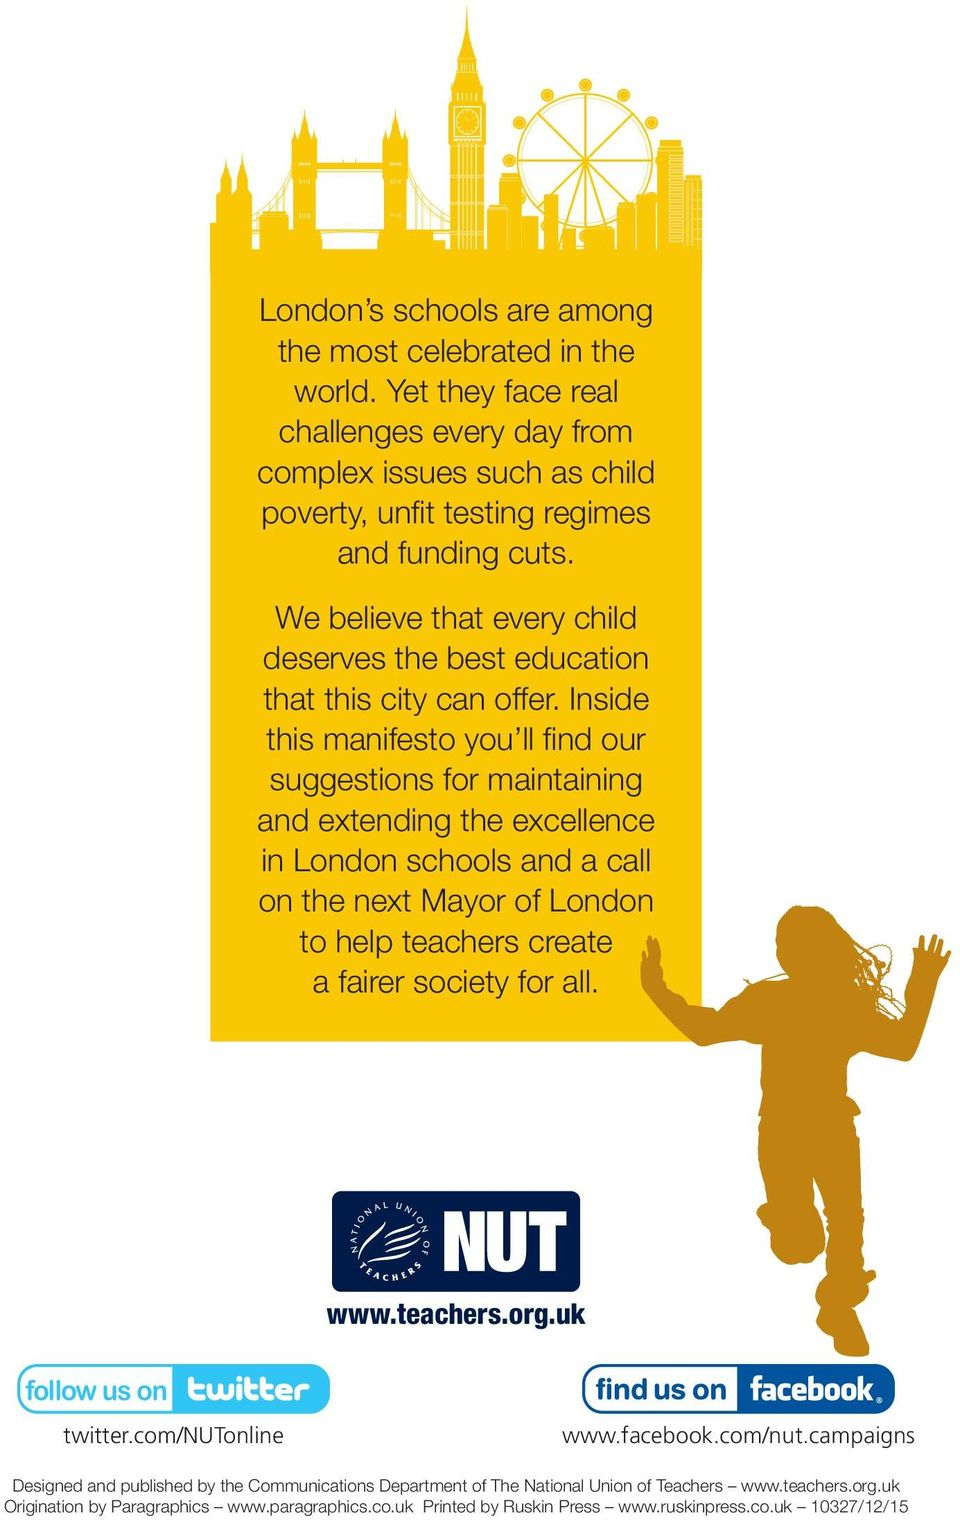 Inside this manifesto you ll find our suggestions for maintaining and extending the excellence in London schools and a call on the next Mayor of London to help teachers create a fairer society